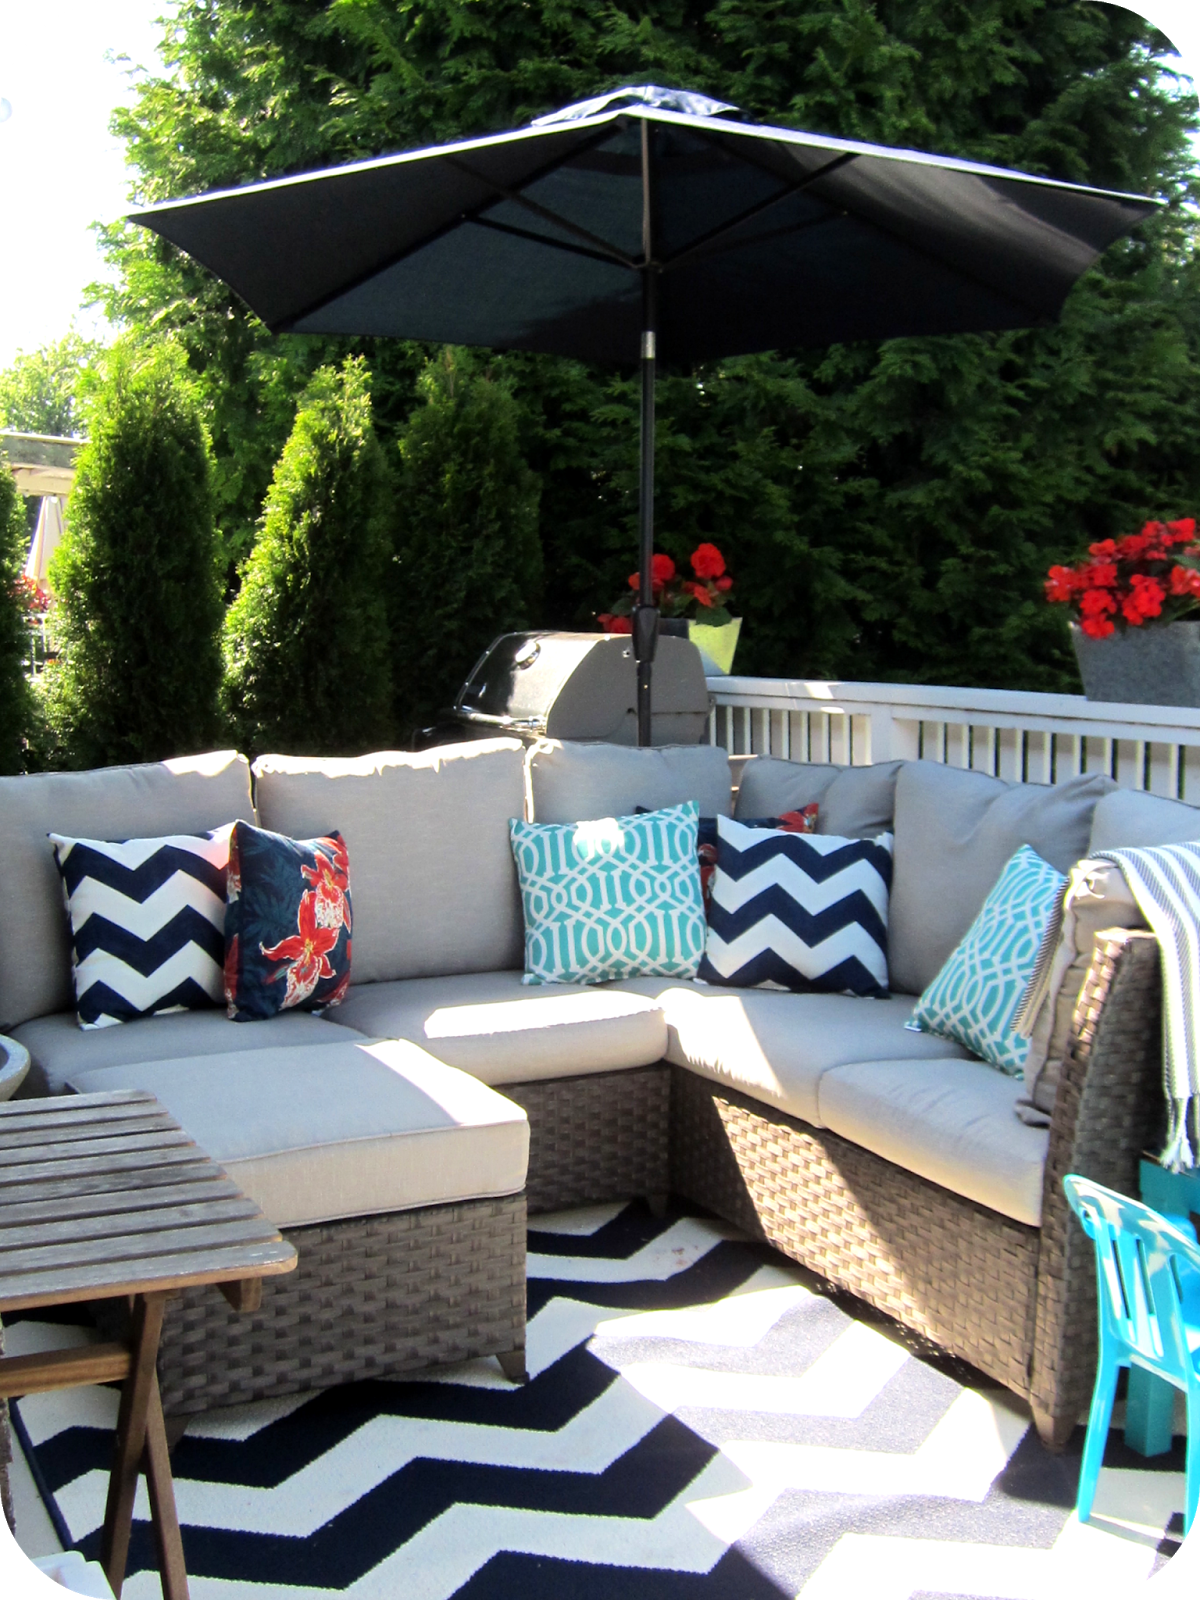 Target Outdoor Cushion - Perfect Companion for Everyday ... on Target Outdoor Living id=14576